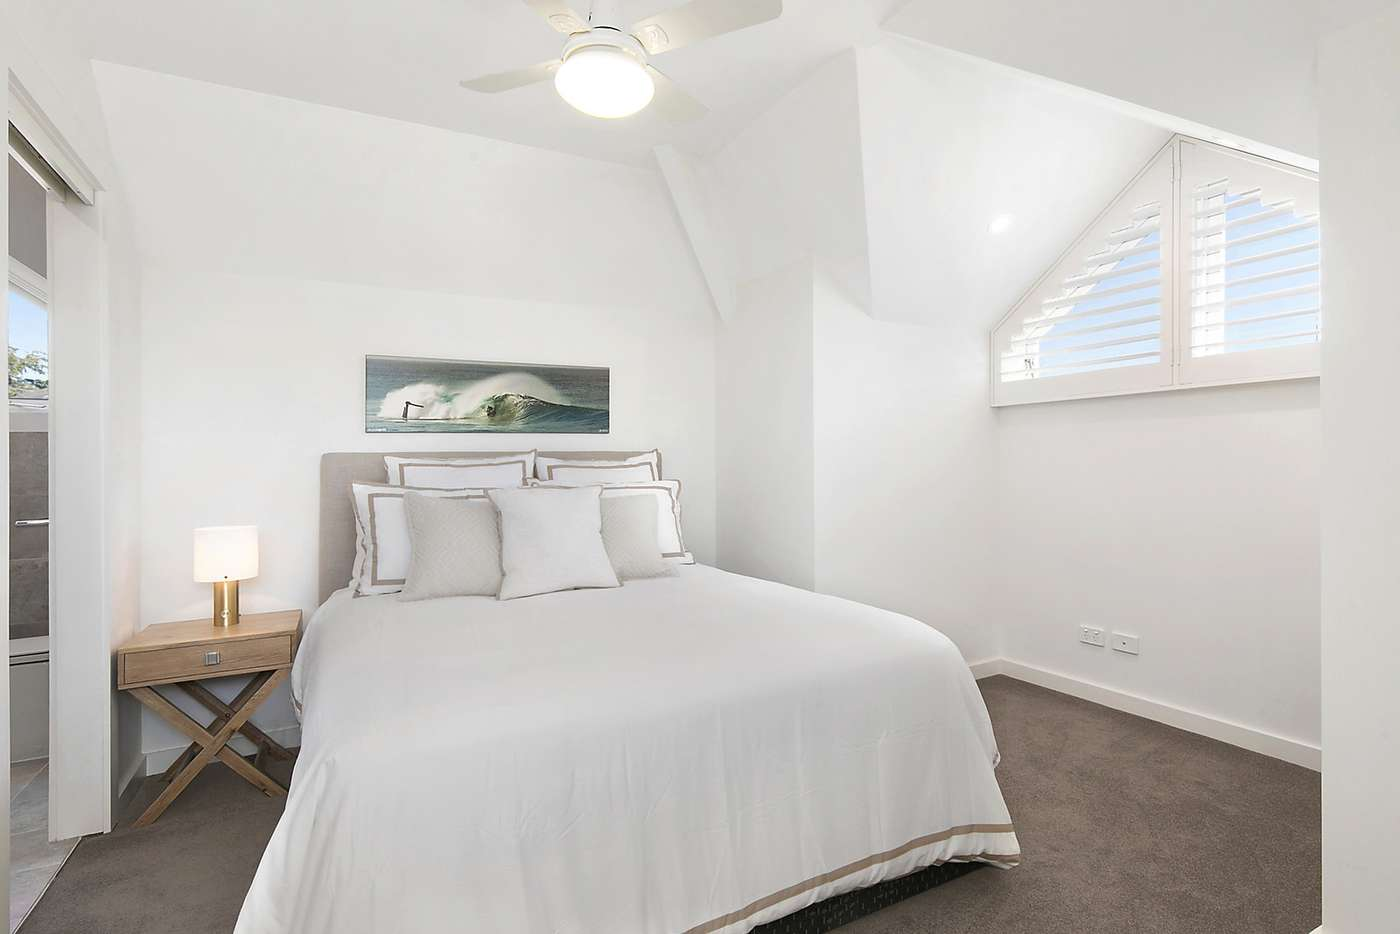 Fifth view of Homely apartment listing, 3/36A Park Road, Naremburn NSW 2065